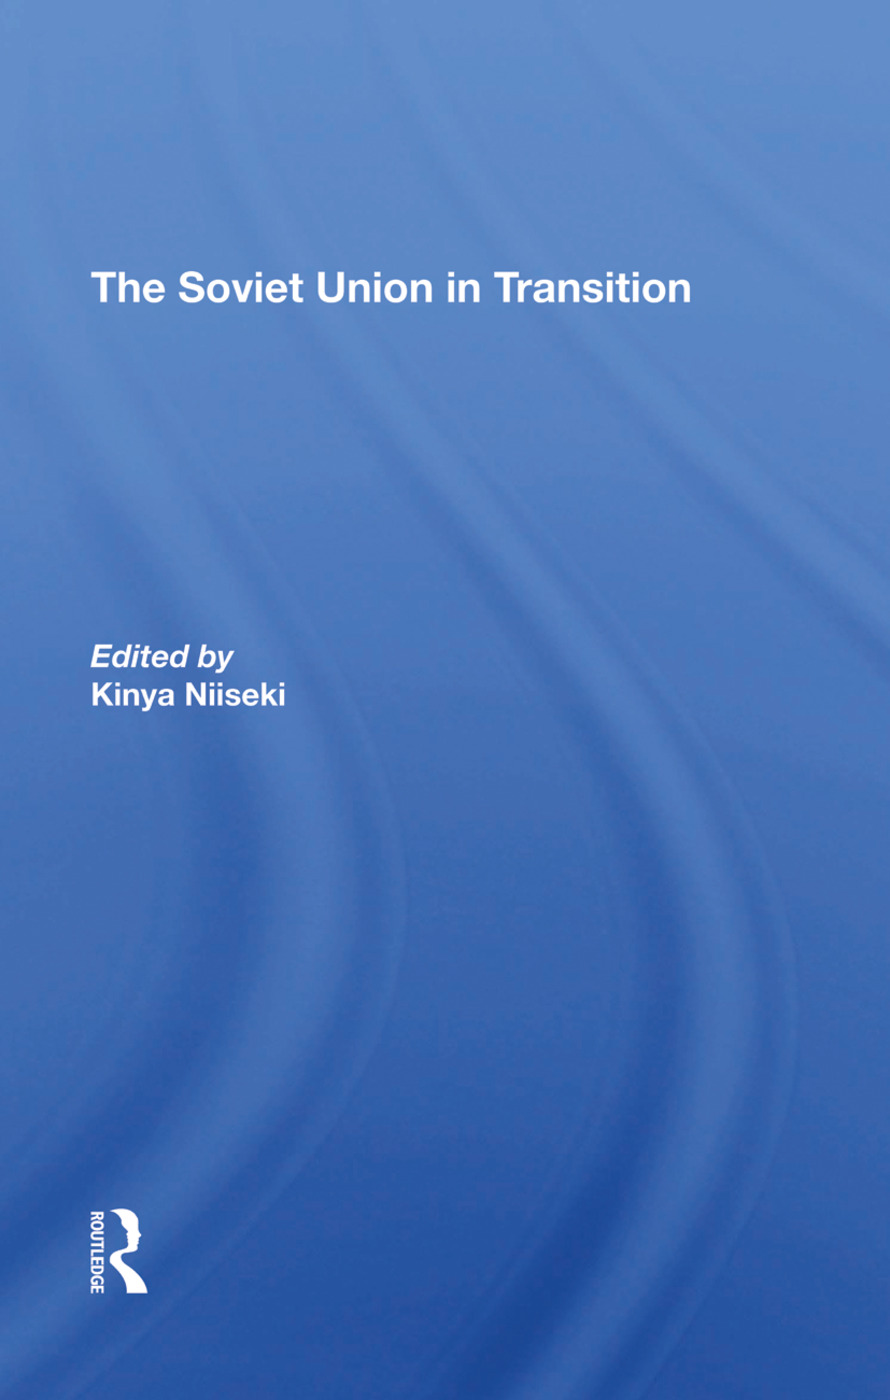 Soviet Economic Trends, with Special Emphasis on Investment and Energy Policies